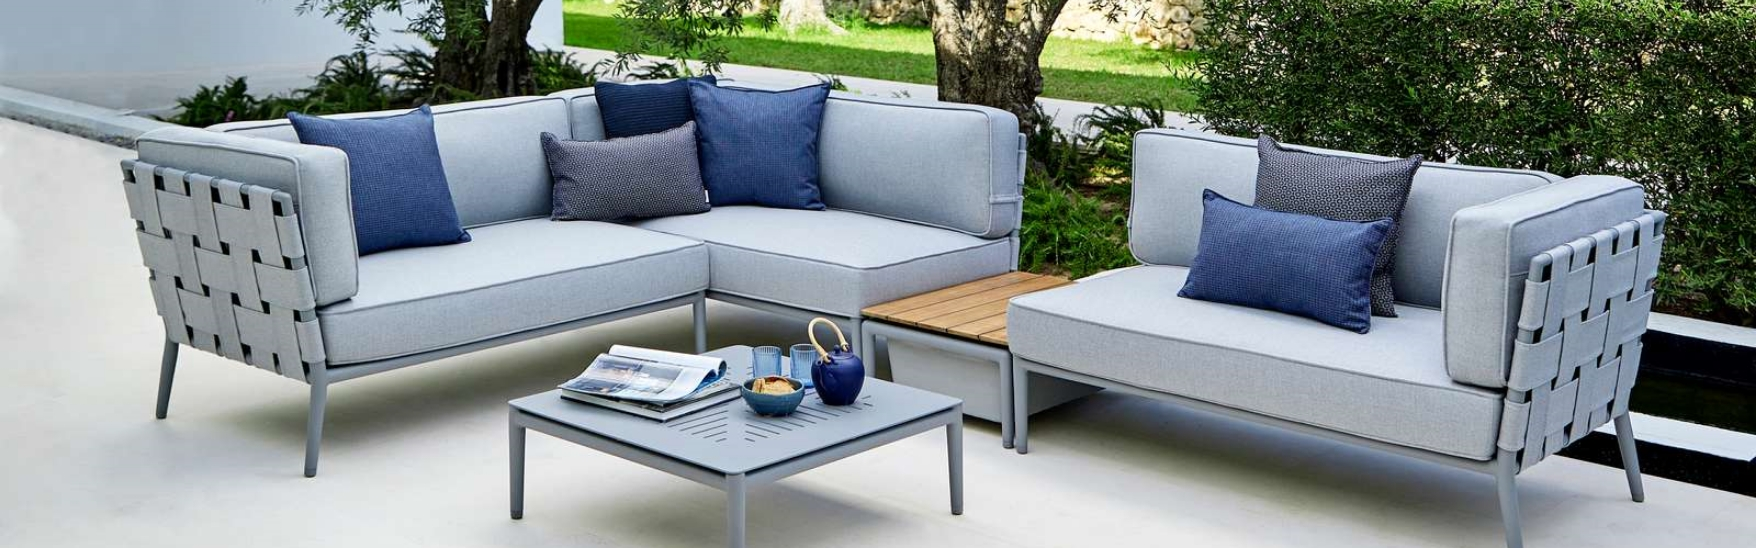 Choose Furniture for Your Outdoor Space